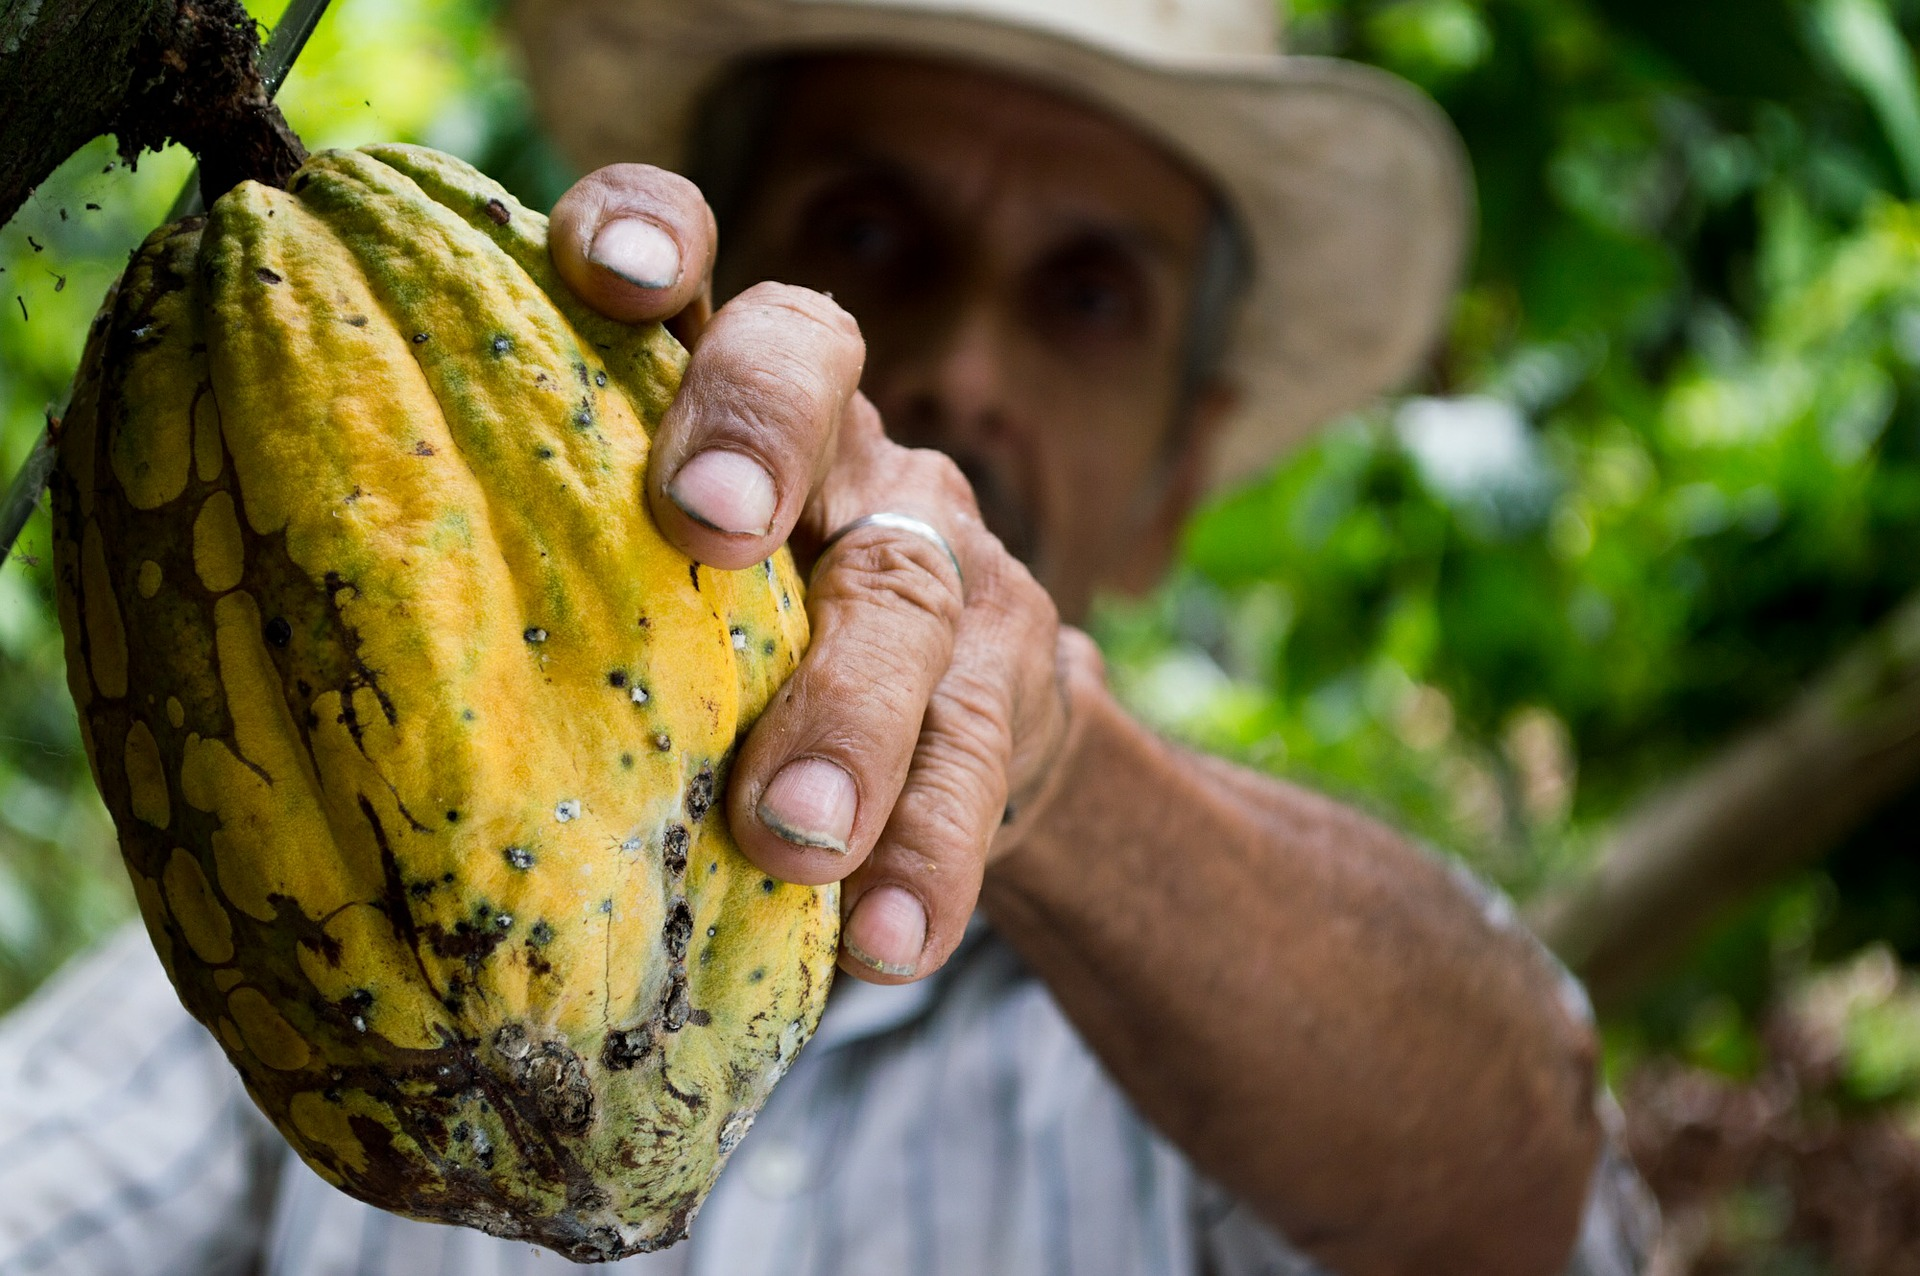 cocoa contains thc like substances